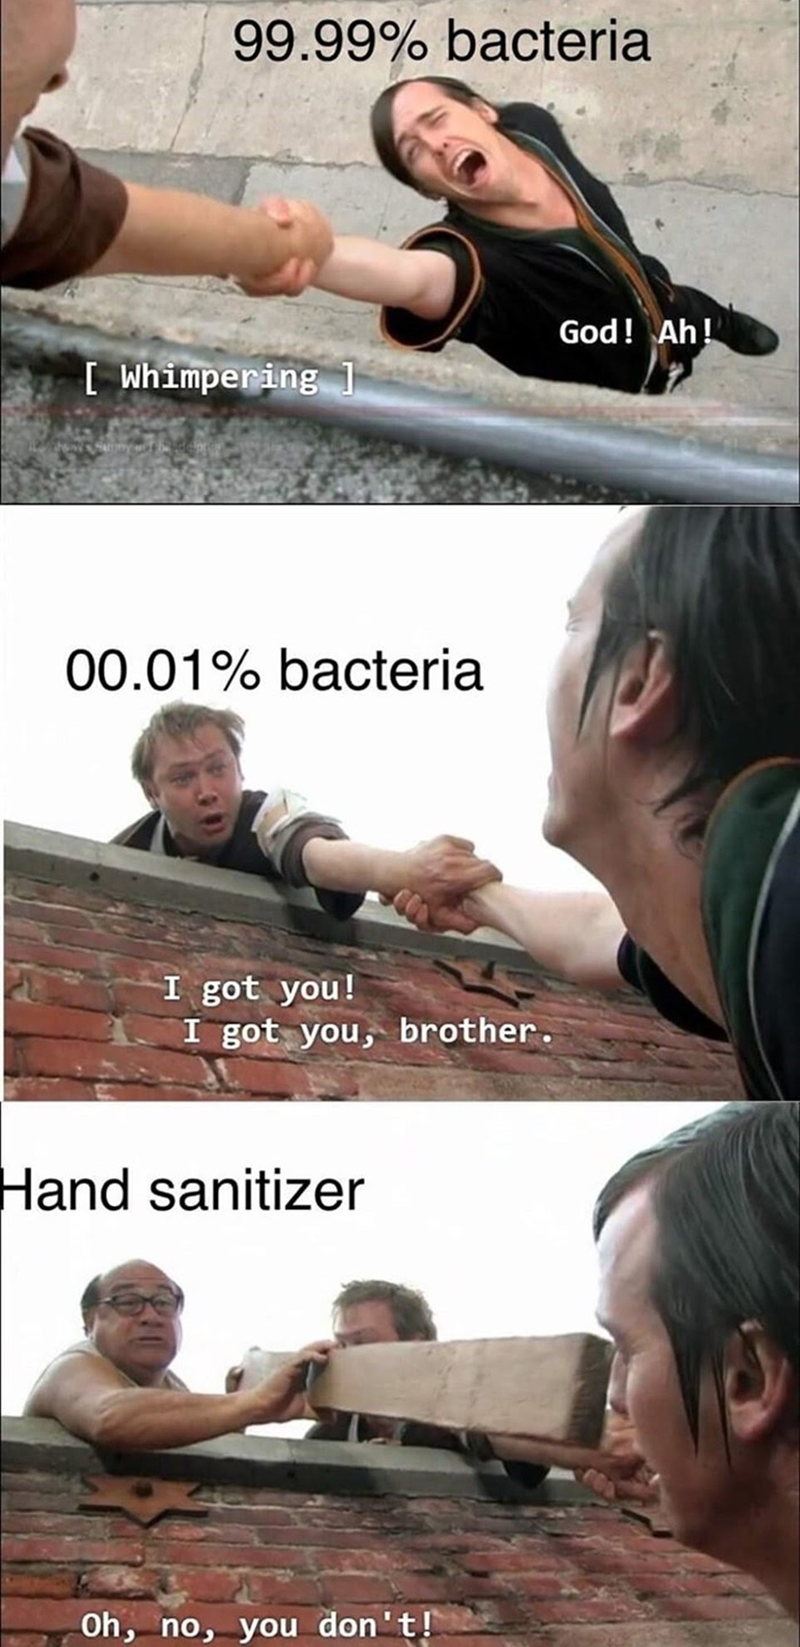 Arm - 99.99% bacteria God! Ah! [ Whimpering 00.01% bacteria I got you! I got you, brother. Hand sanitizer Oh, no, you don't!